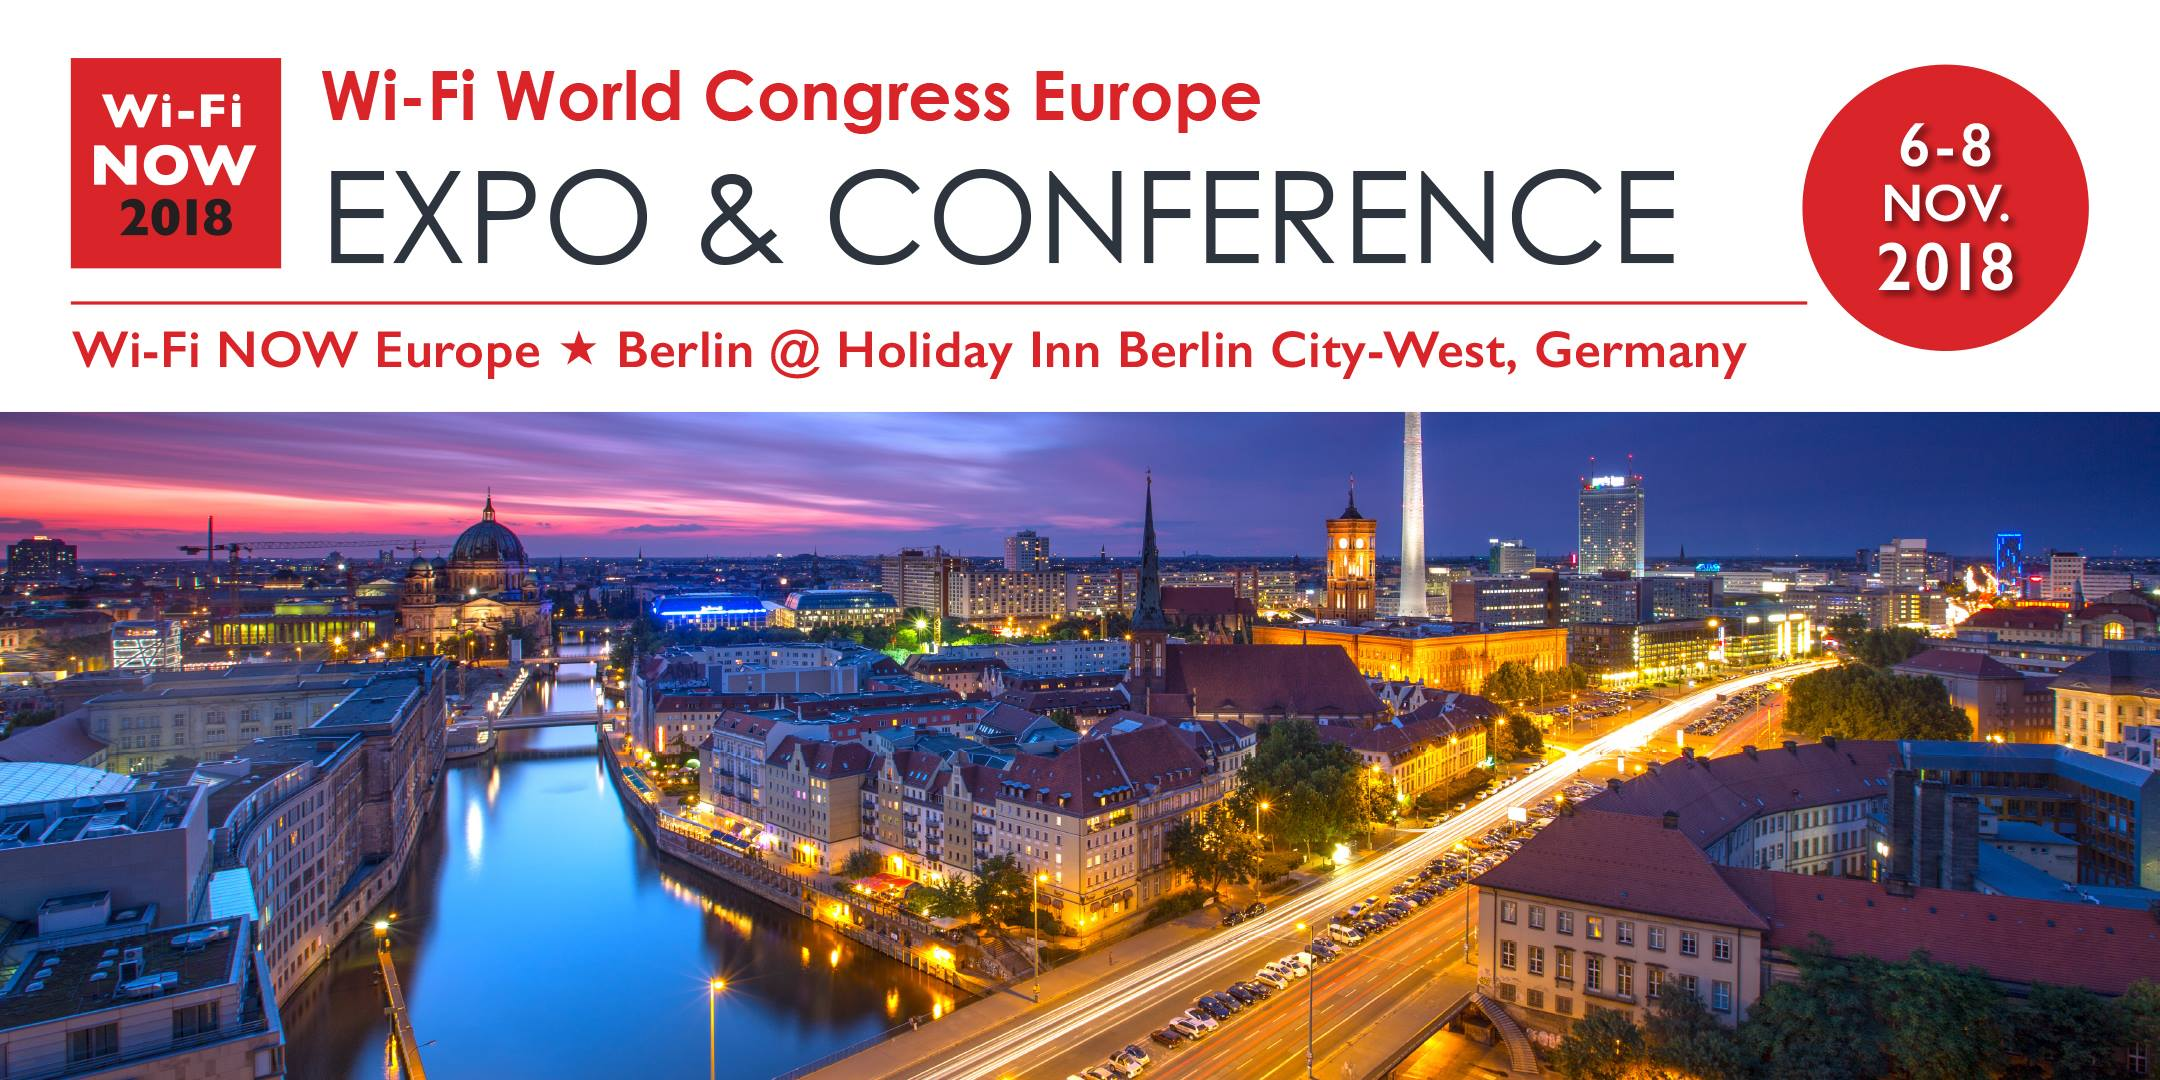 Meet inspirational keynote speakers and innovators at Wi-Fi NOW expo and conference in Berlin